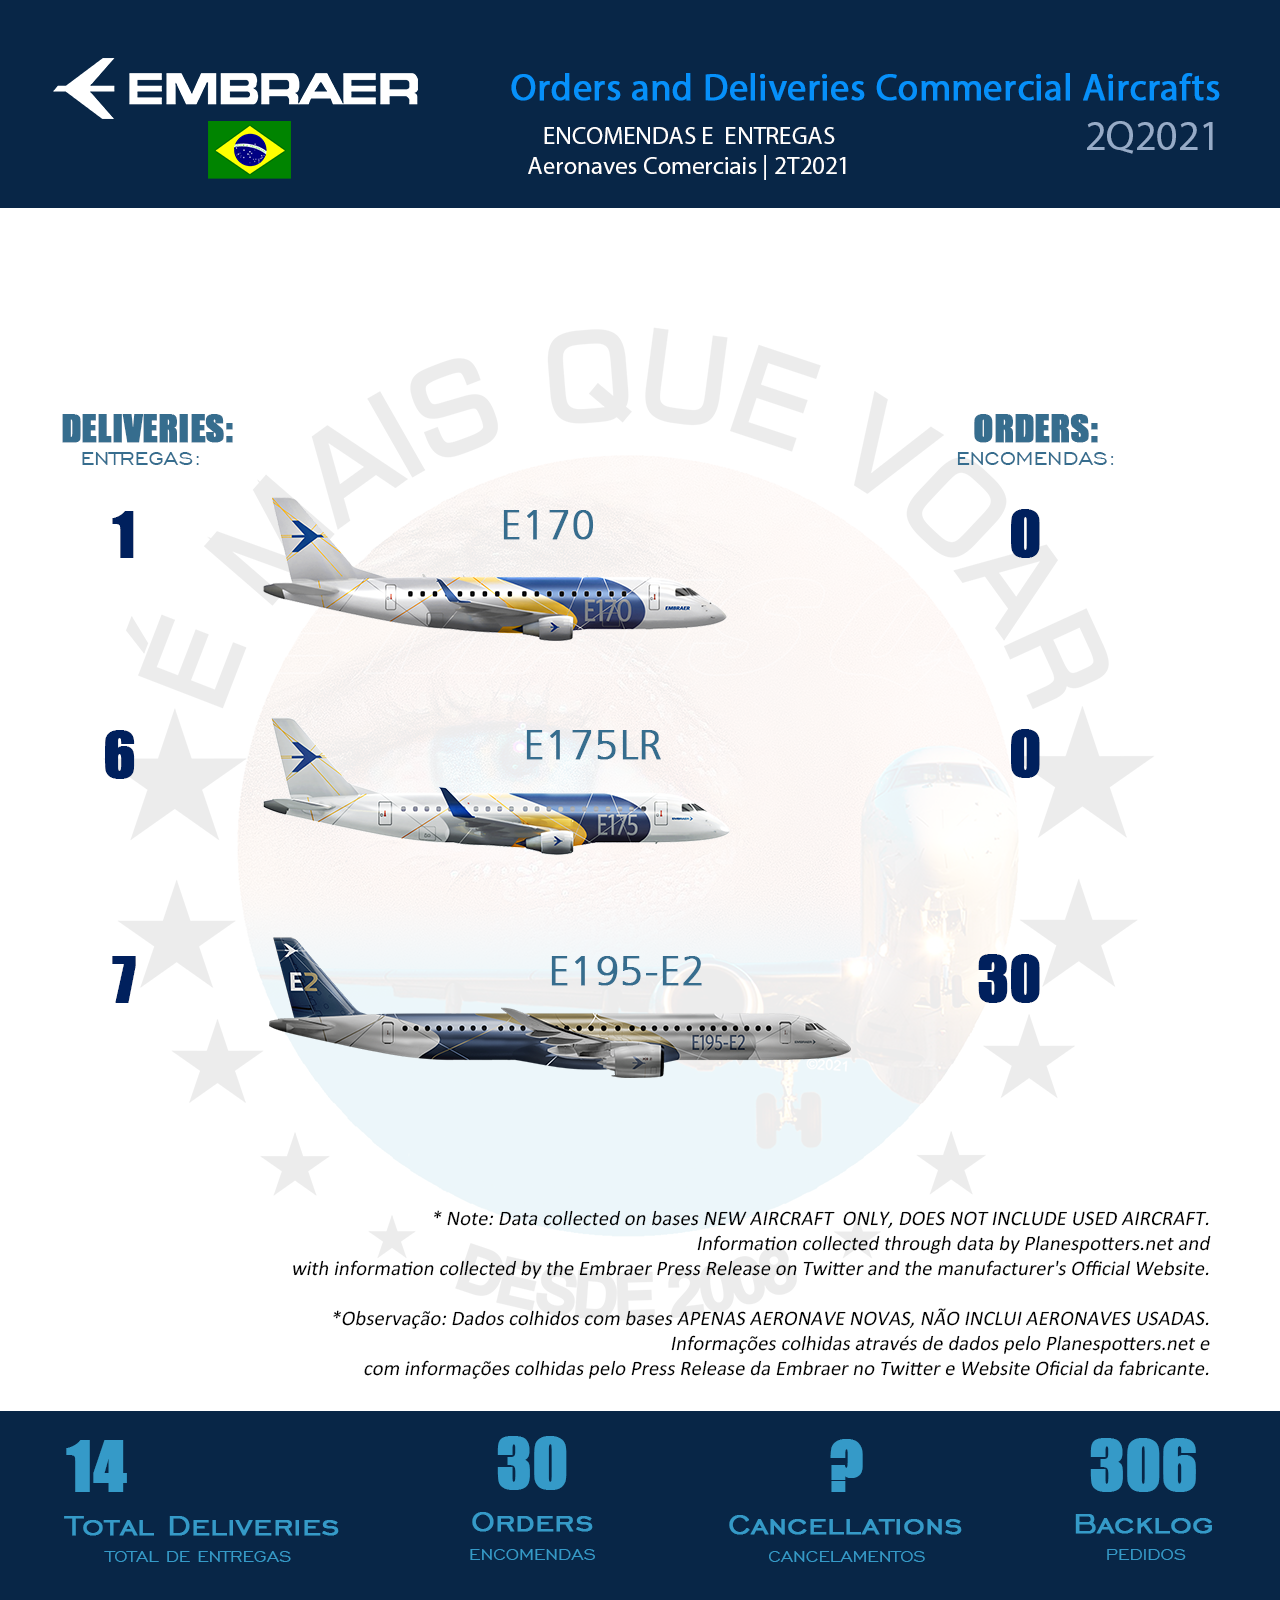 Embraer -  deliveries and orders in the second quarter of 2021 (2Q21)